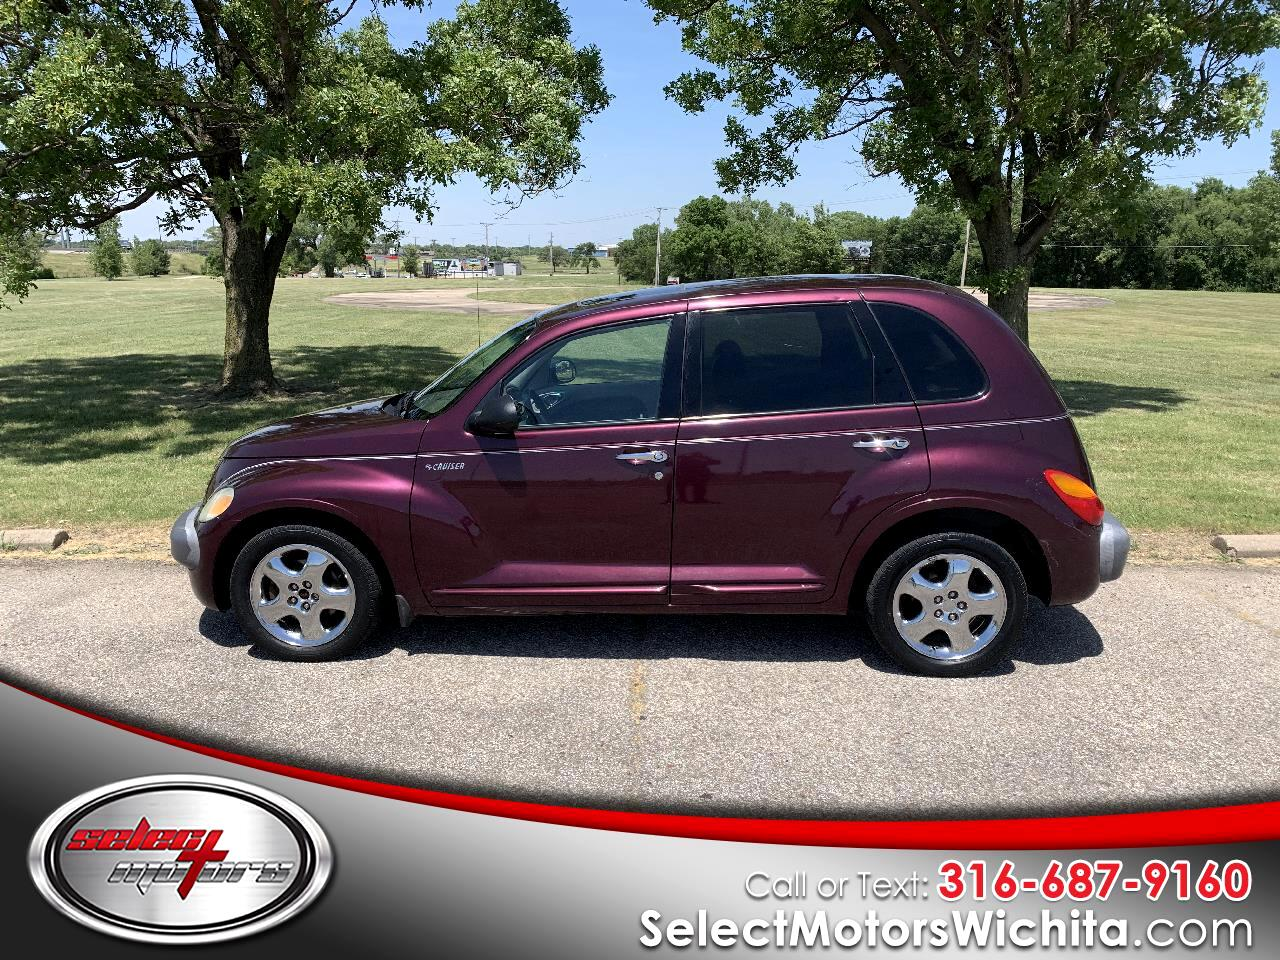 Chrysler PT Cruiser 4dr Wgn 2001